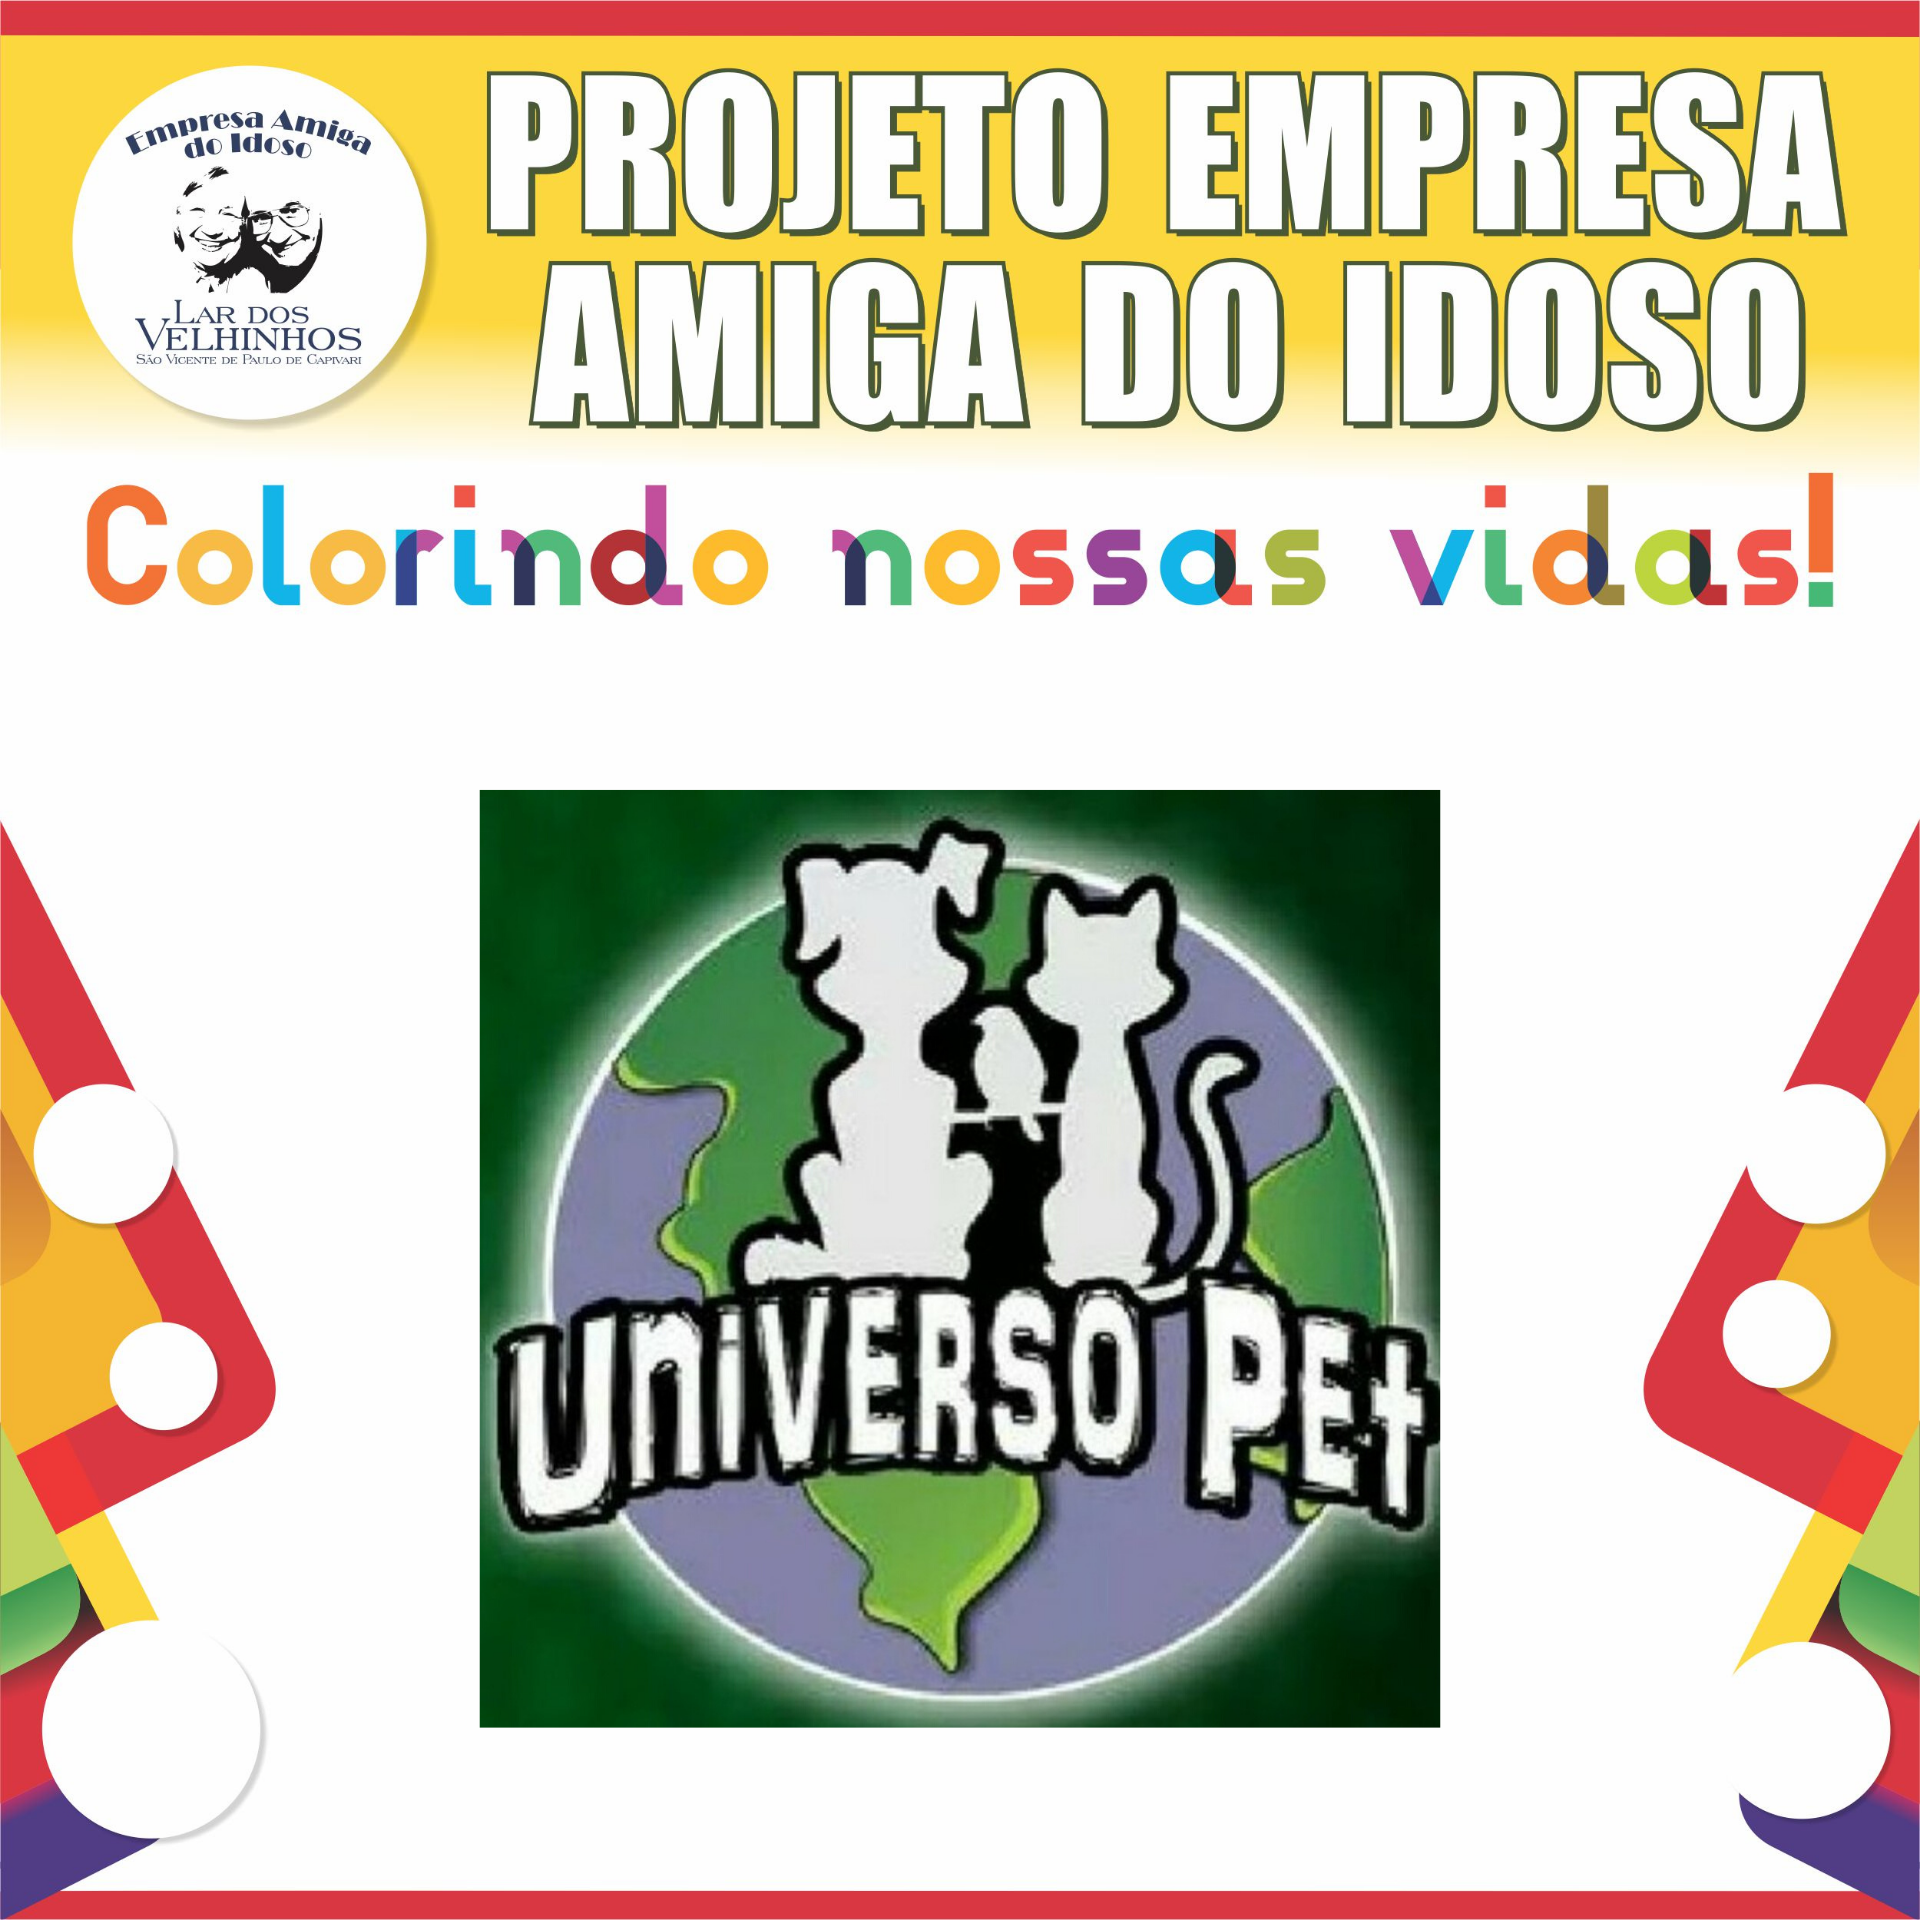 Empresa Amiga do Idoso 2020 - Universo Pet